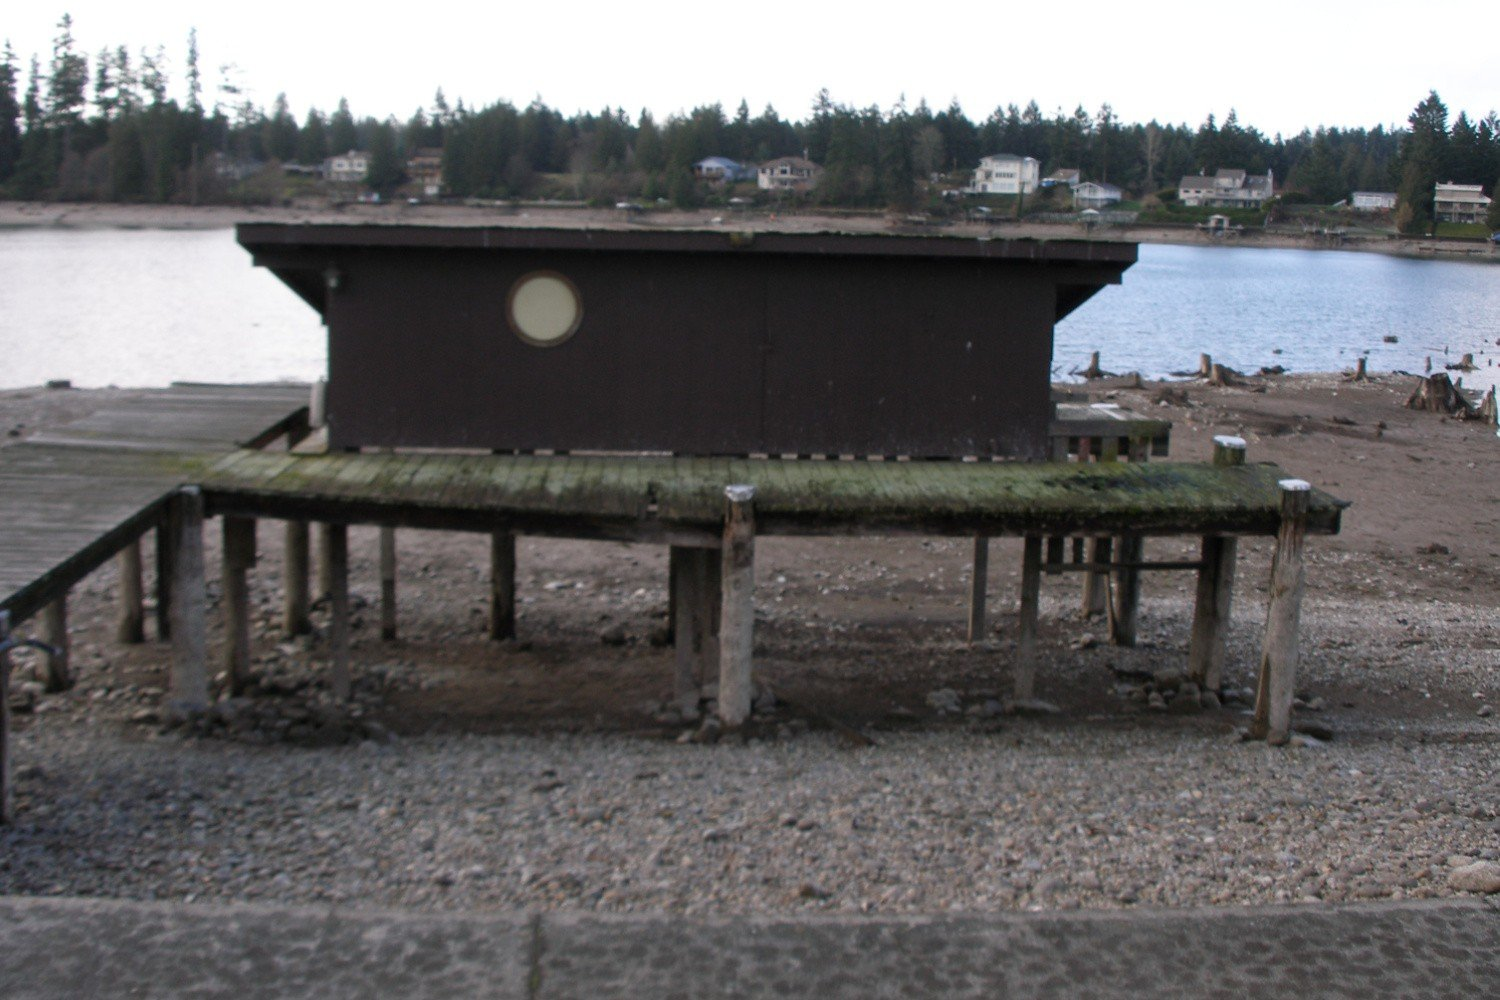 Lake Tapps Boat House Remodel - Before Home Builder Remodel Puyallup WA | Mike Schwartz Construction